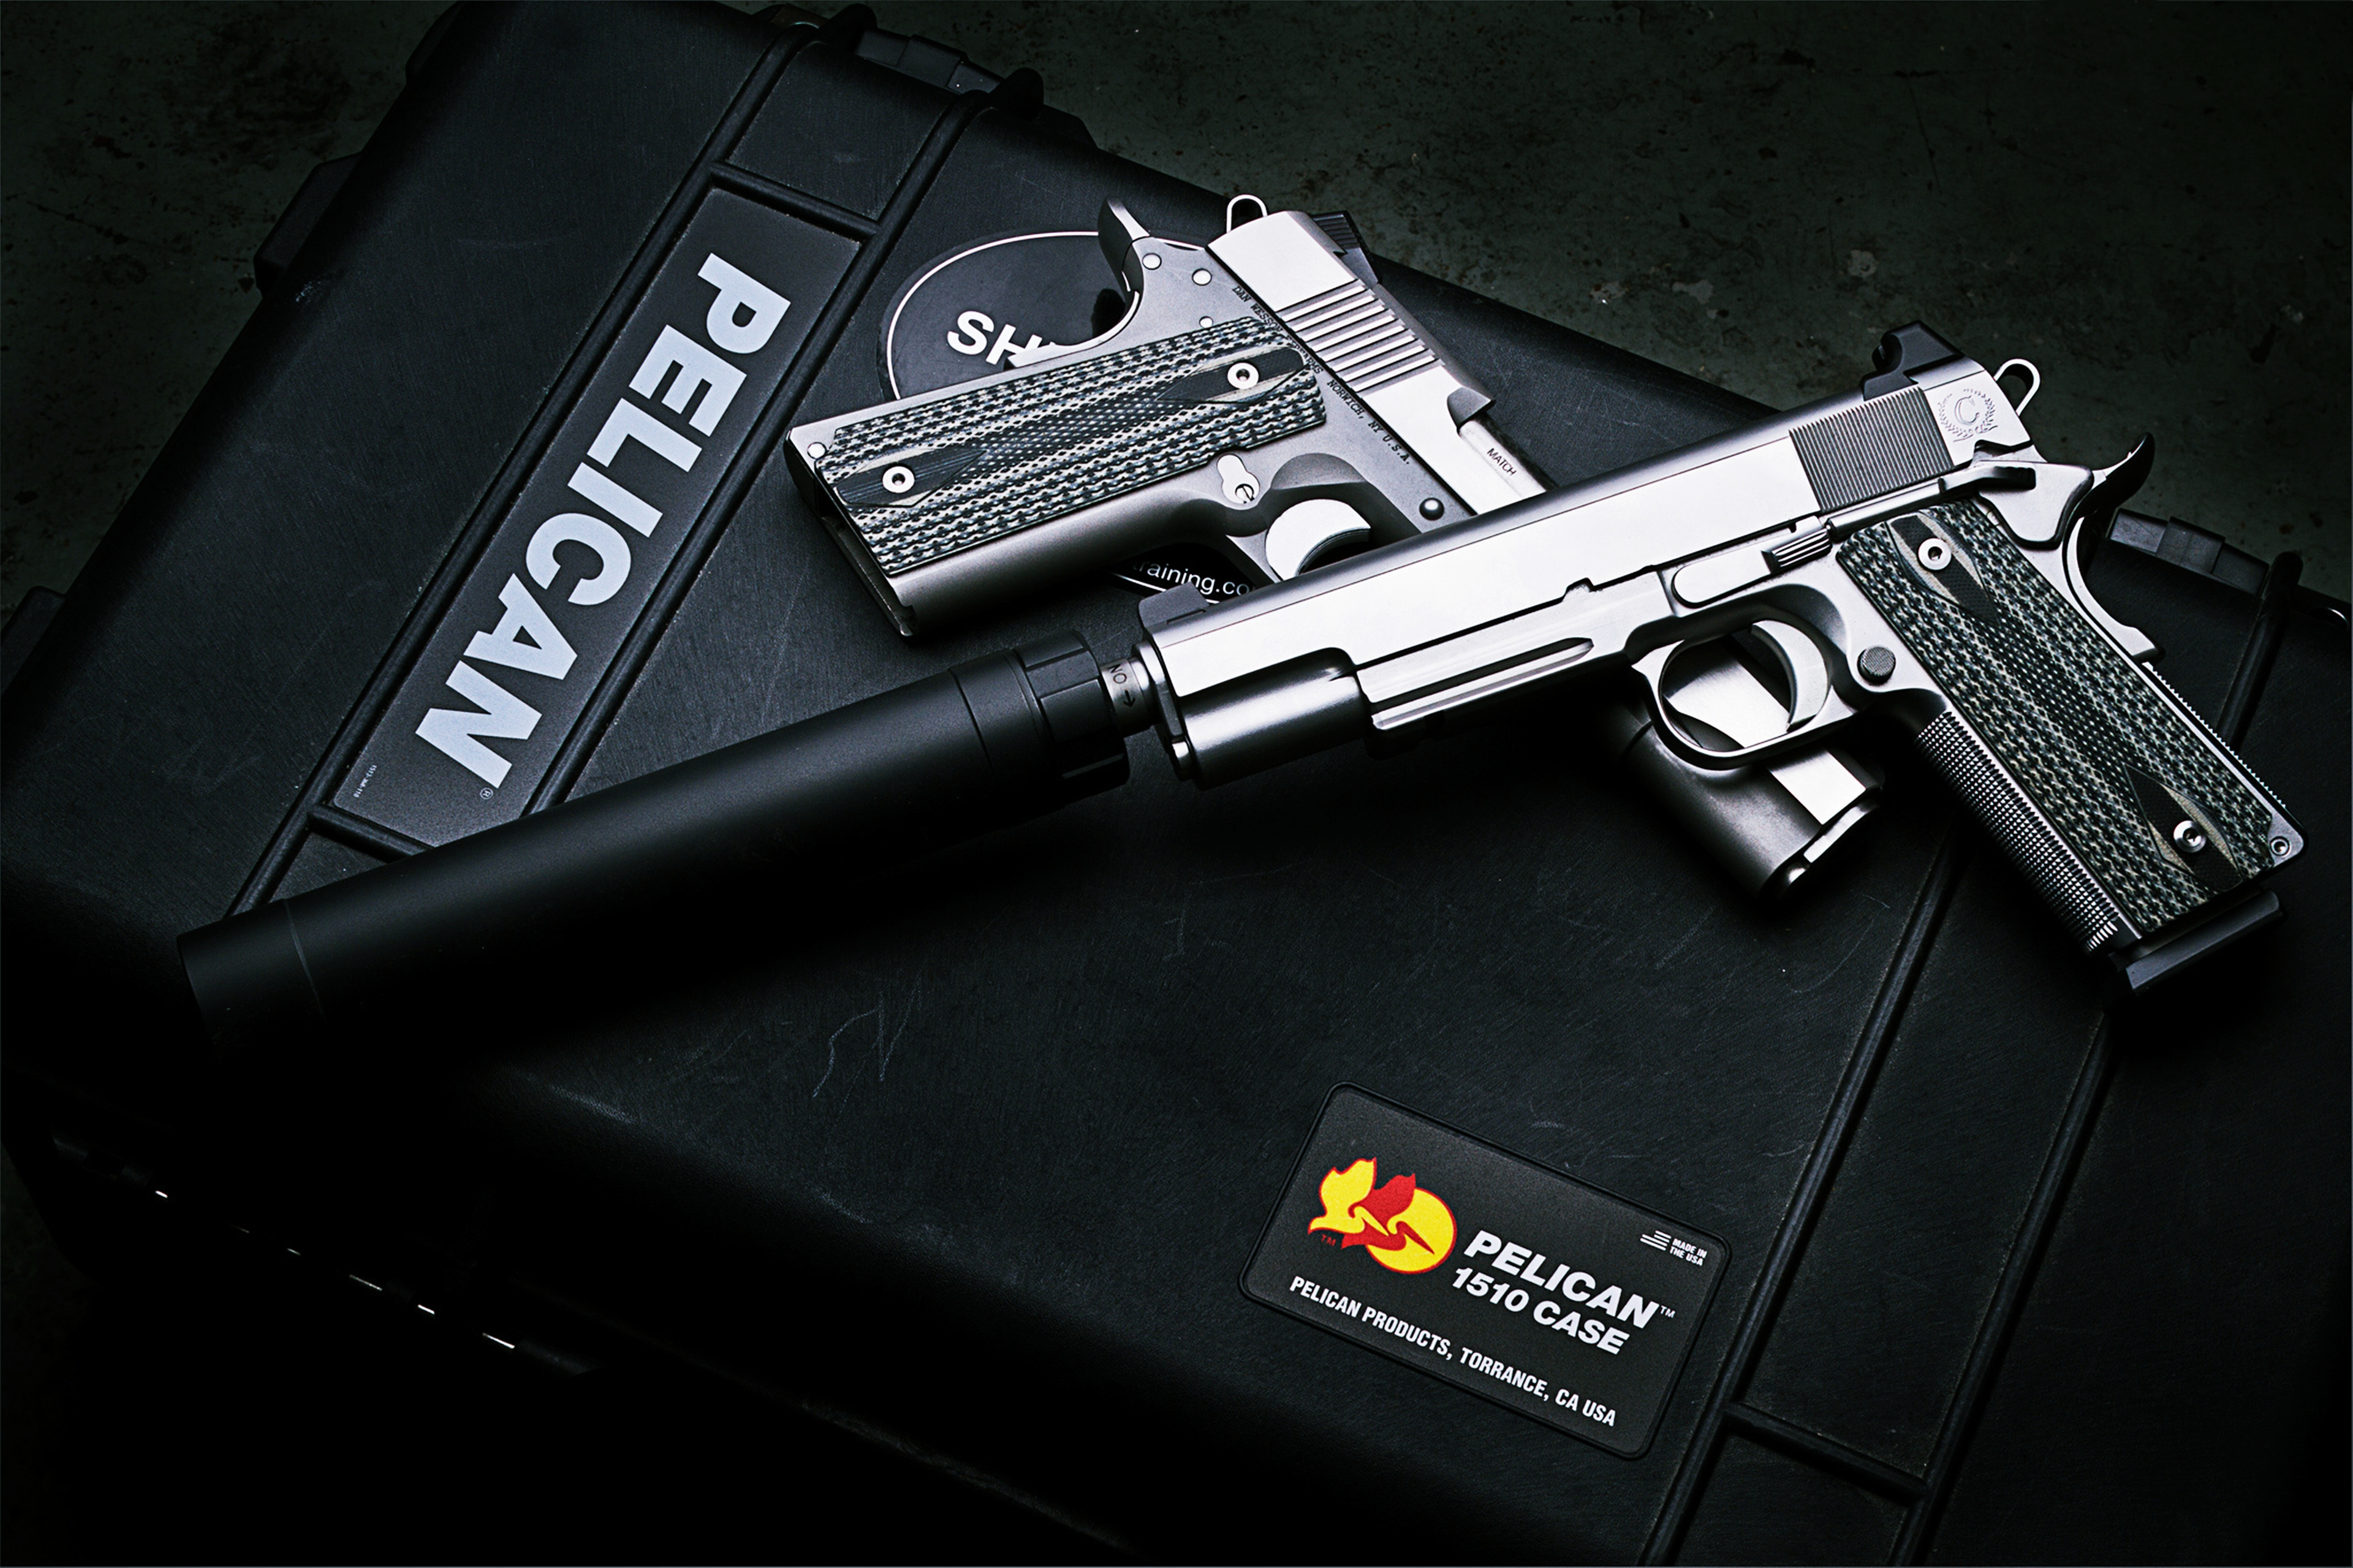 Dan Wesson 1911 4k Ultra HD Wallpaper And Background Image